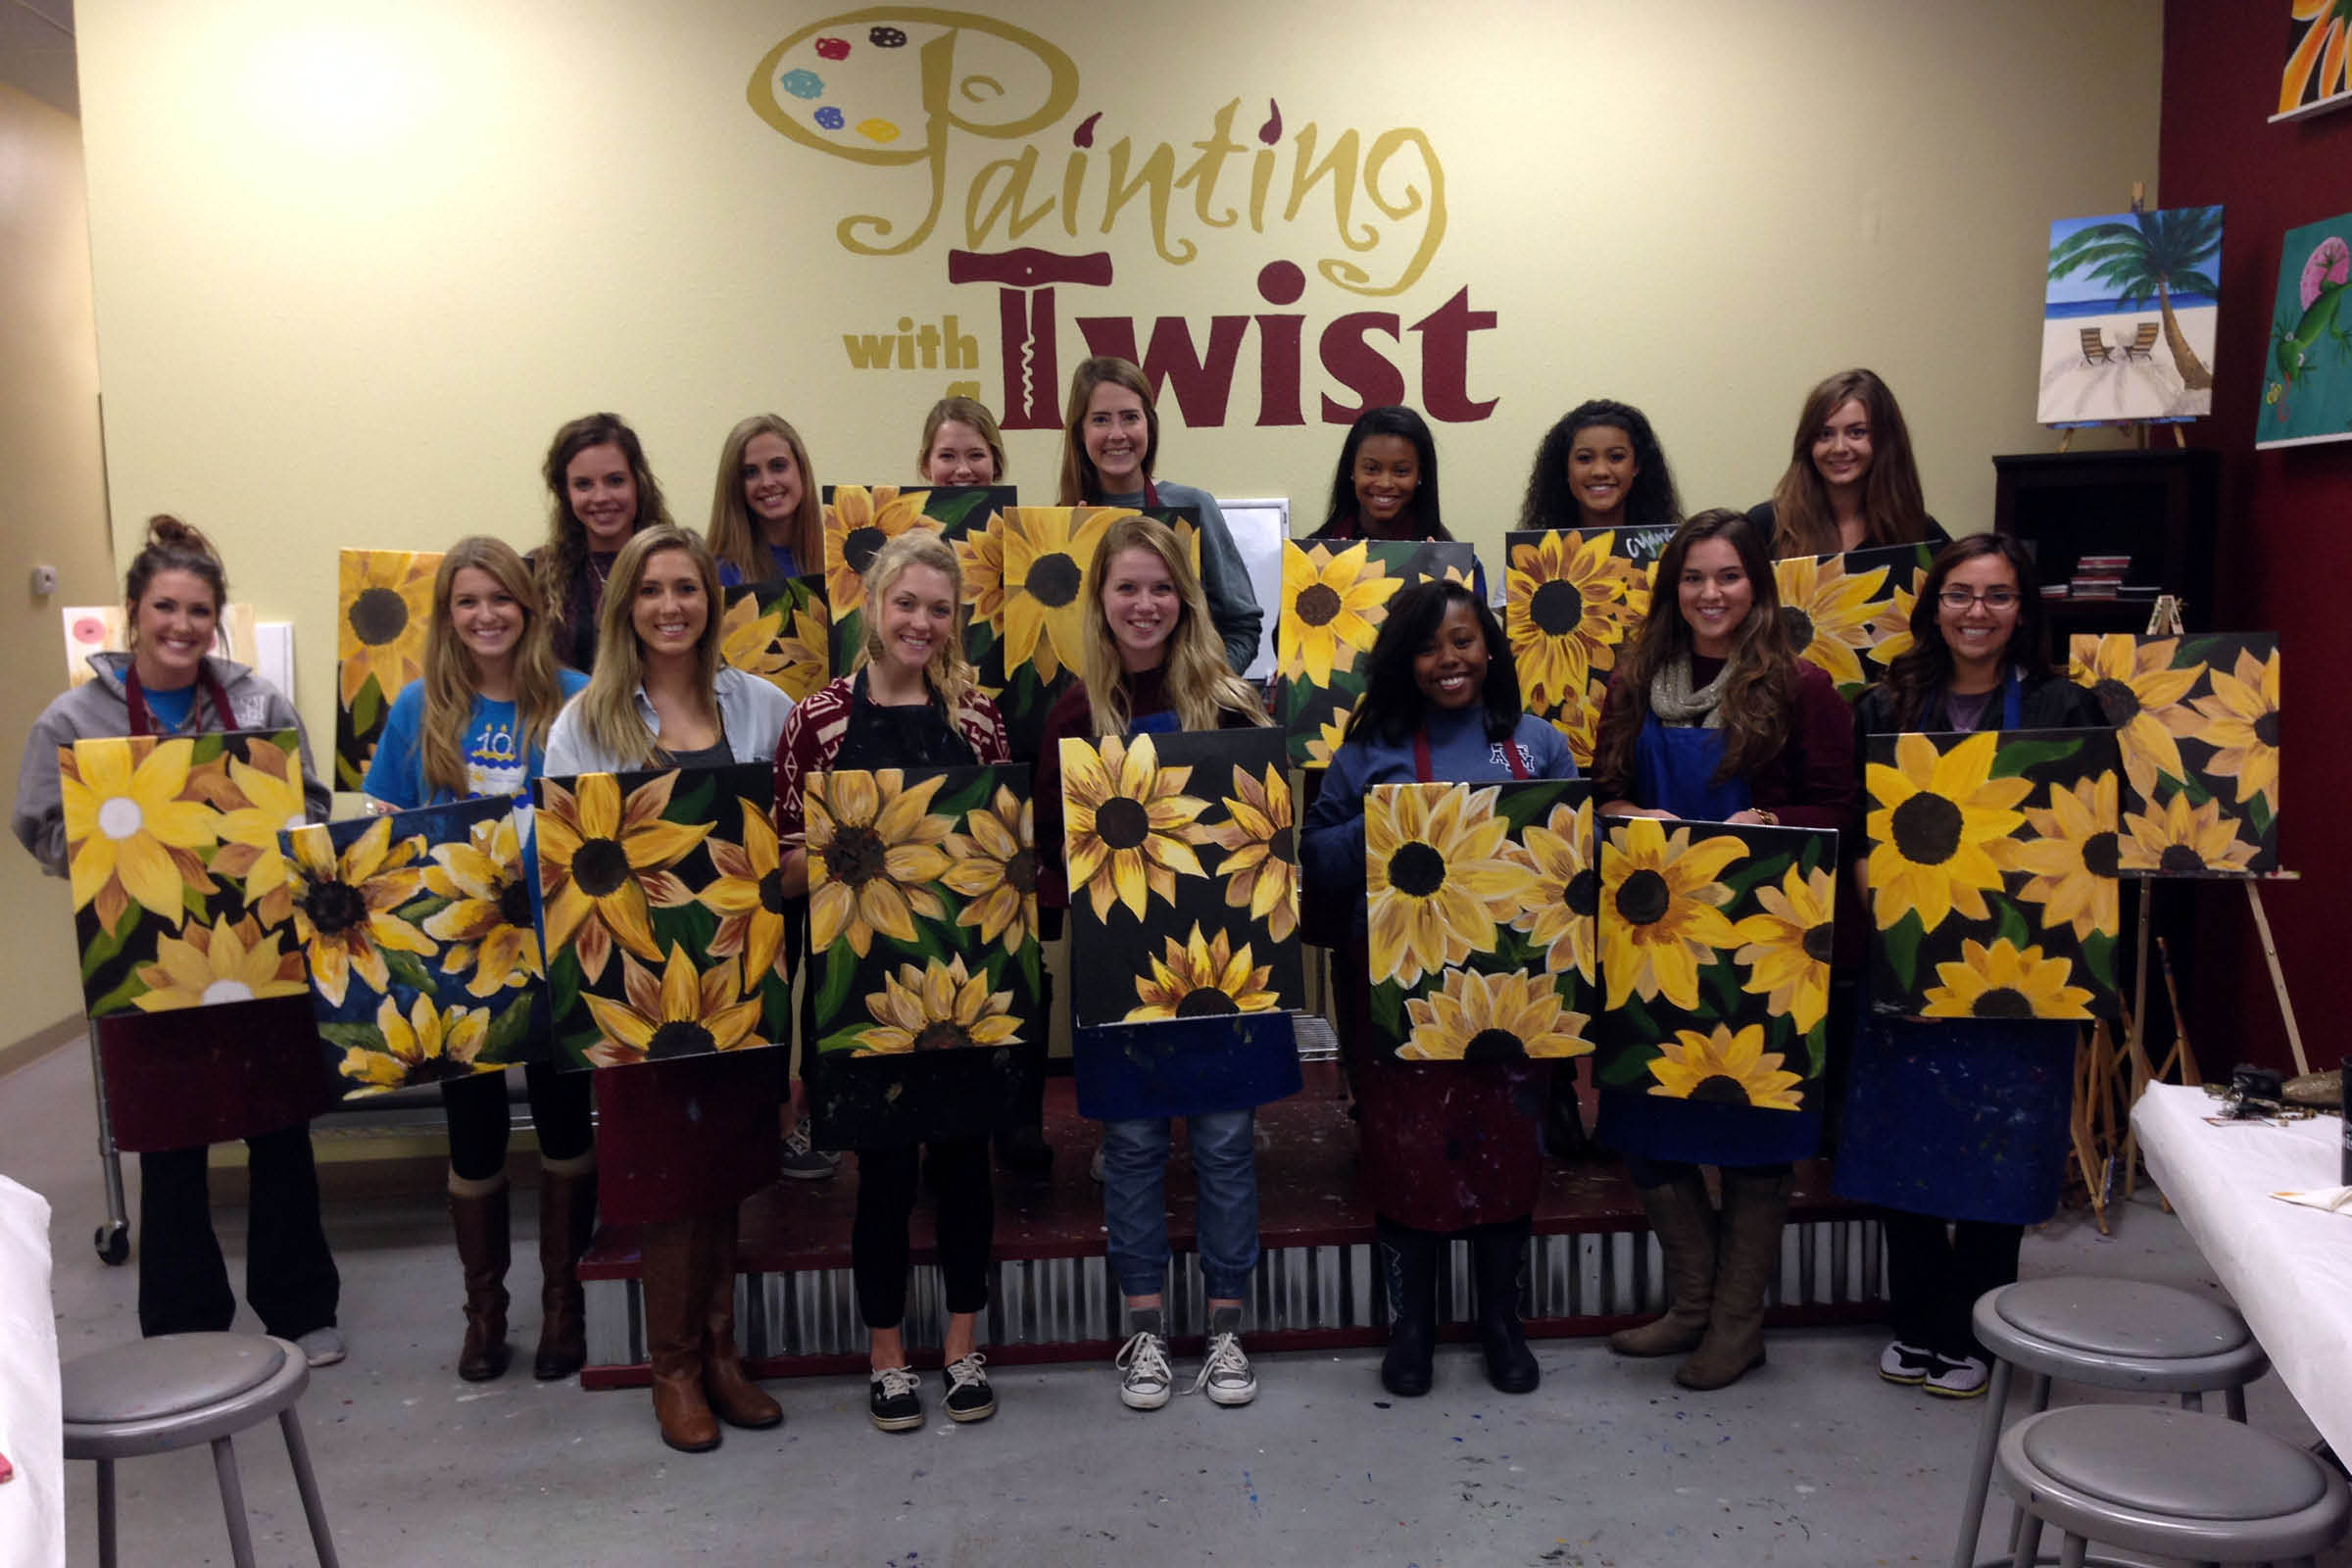 painting twist group class event